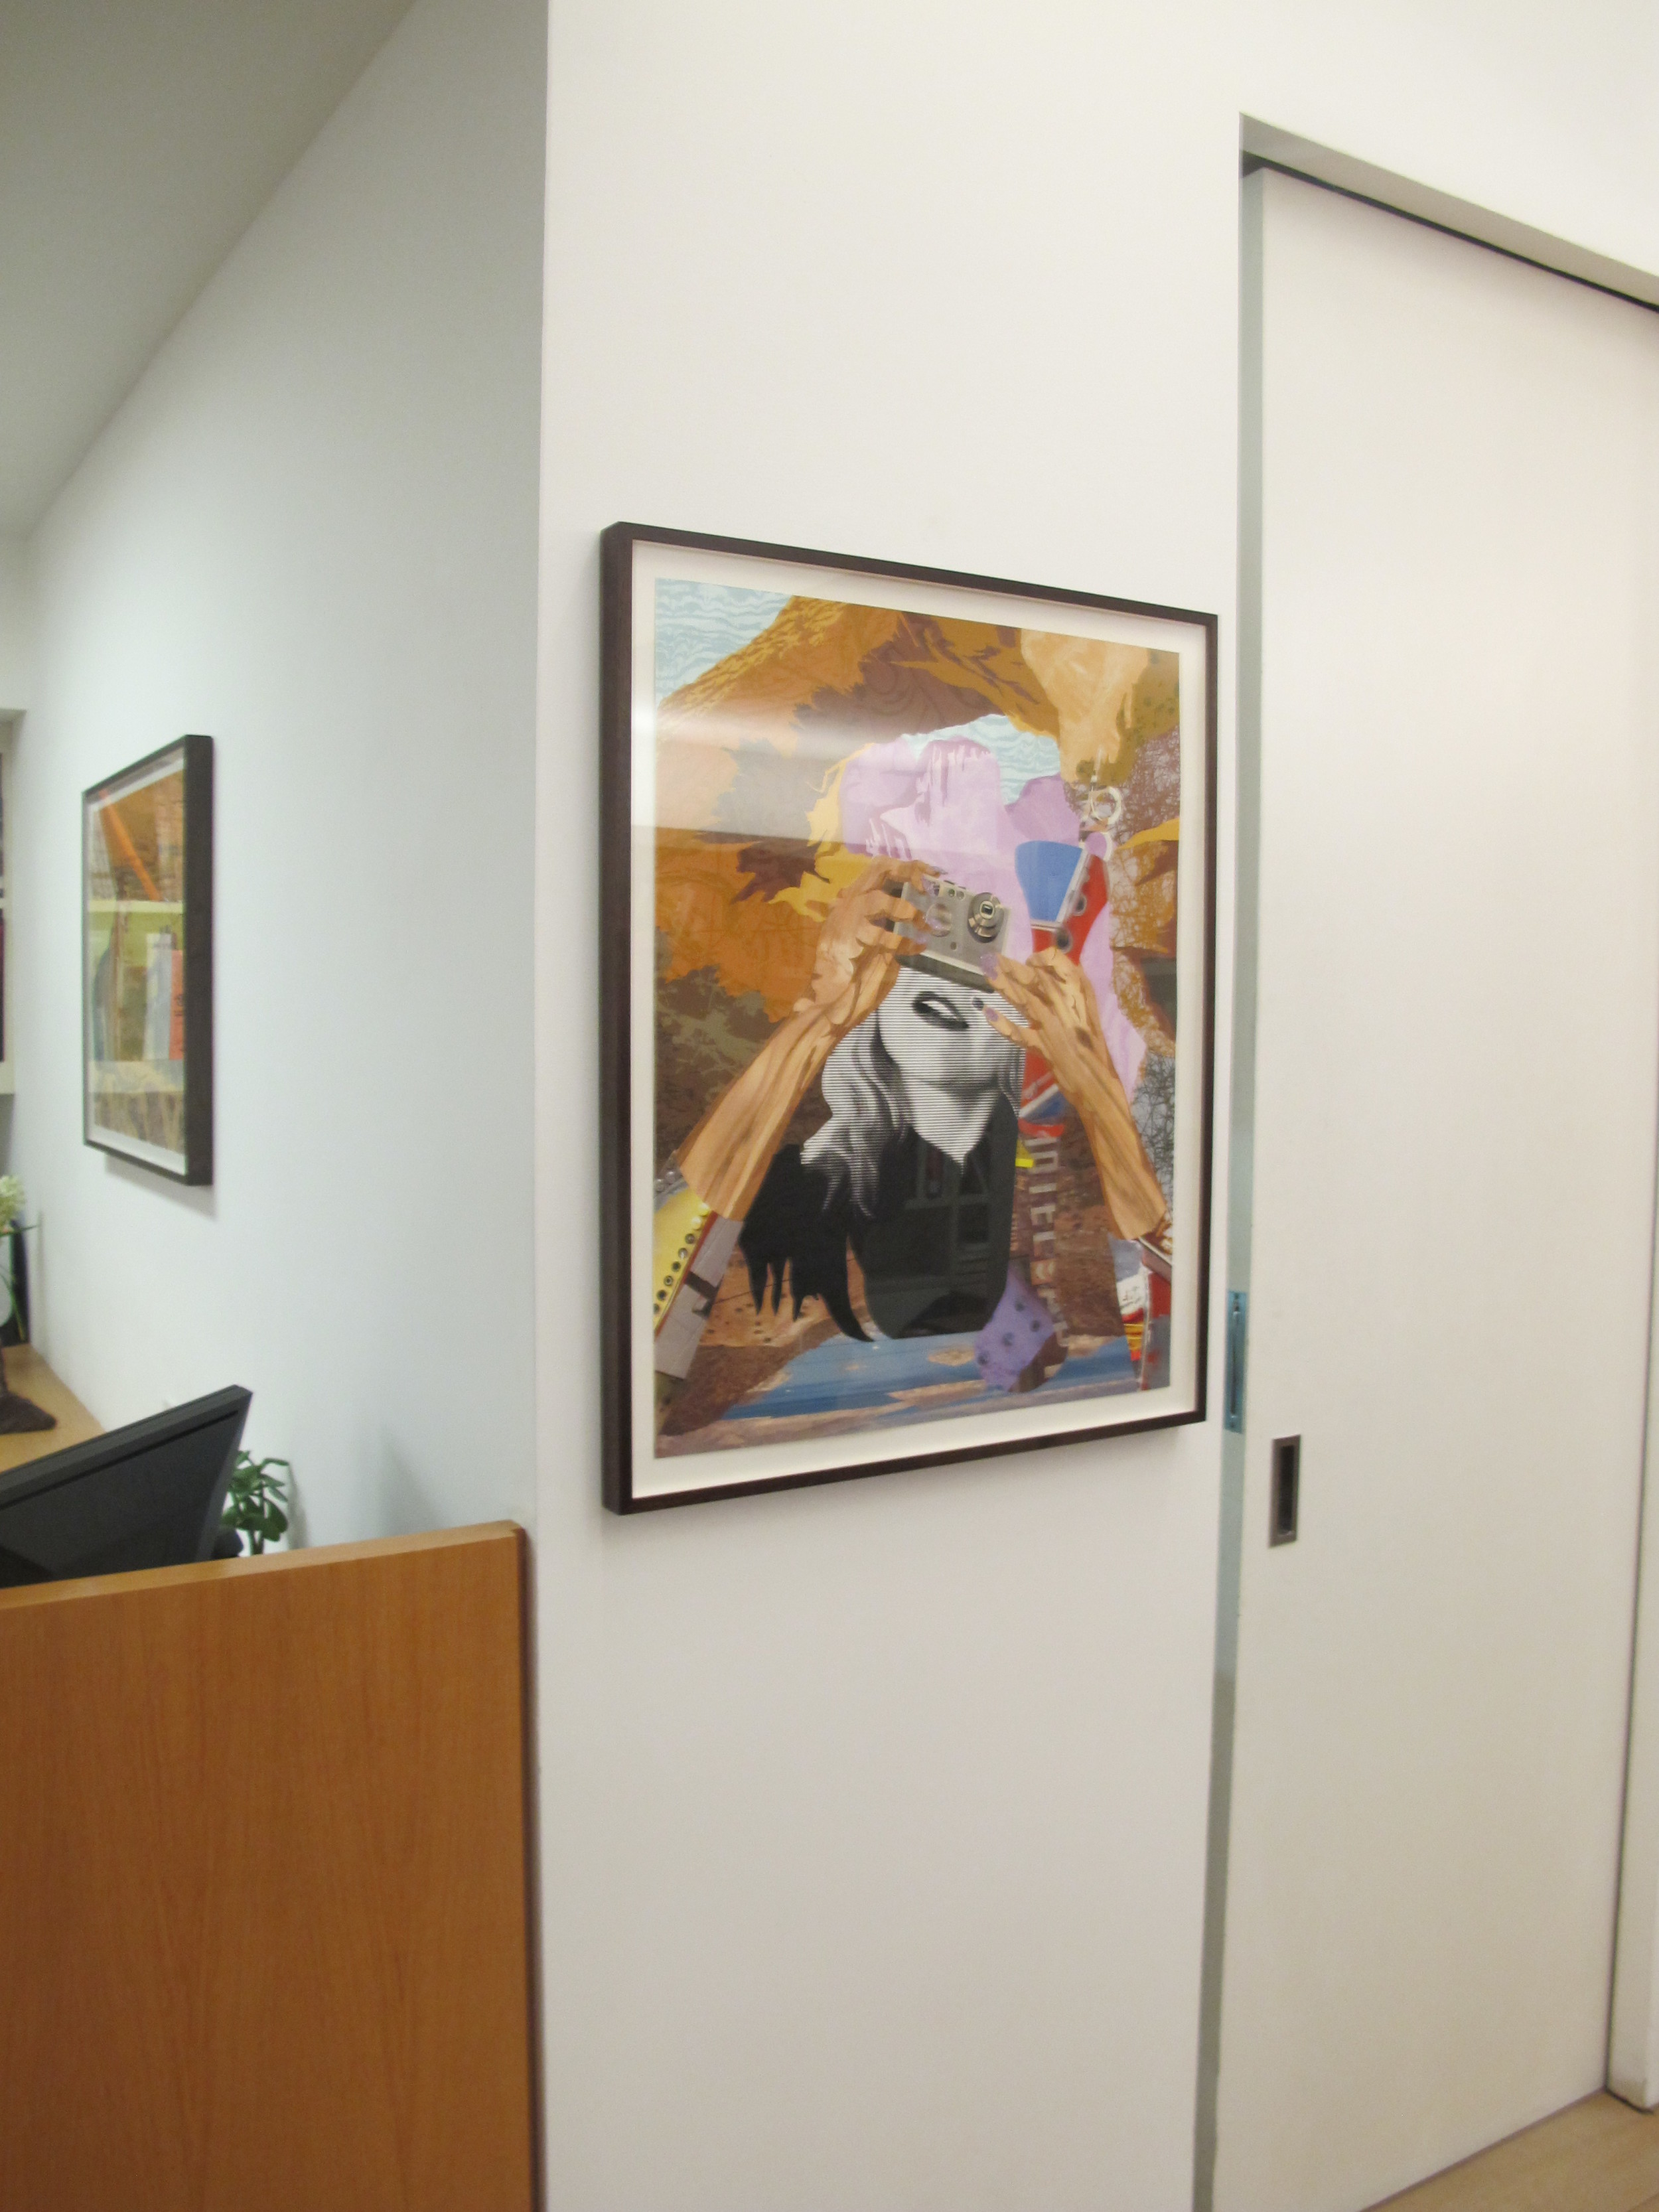 Schilderachtig already framed hanging on the walls of James Cohan Gallery